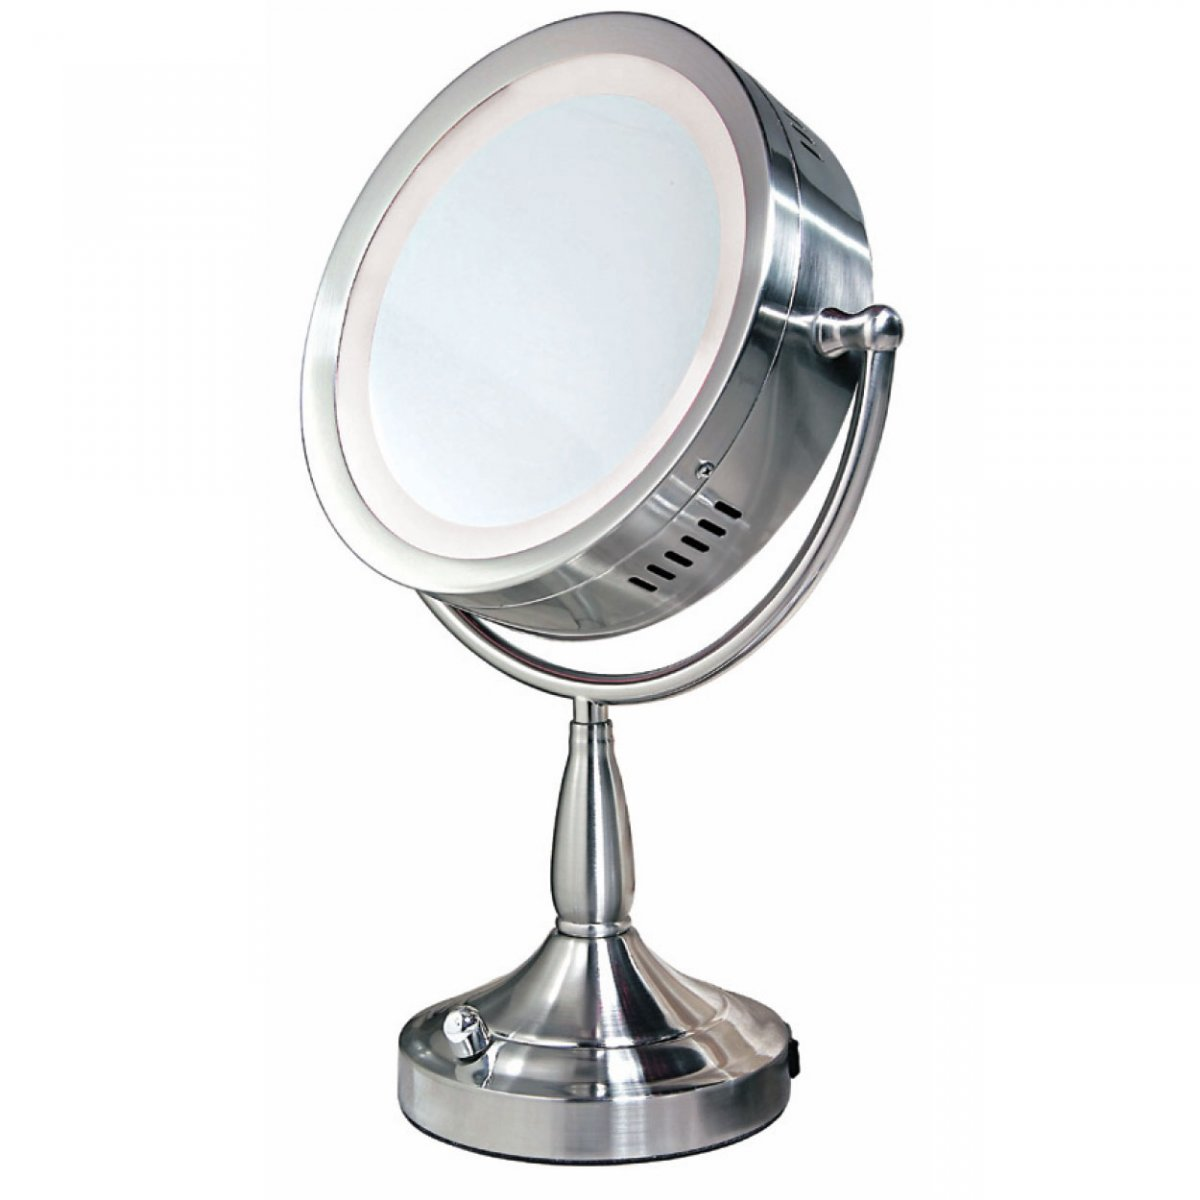 Makeup Vanities With Lighted Mirrors Bedroom Using Best Lighted Makeup Mirror For Pretty Home